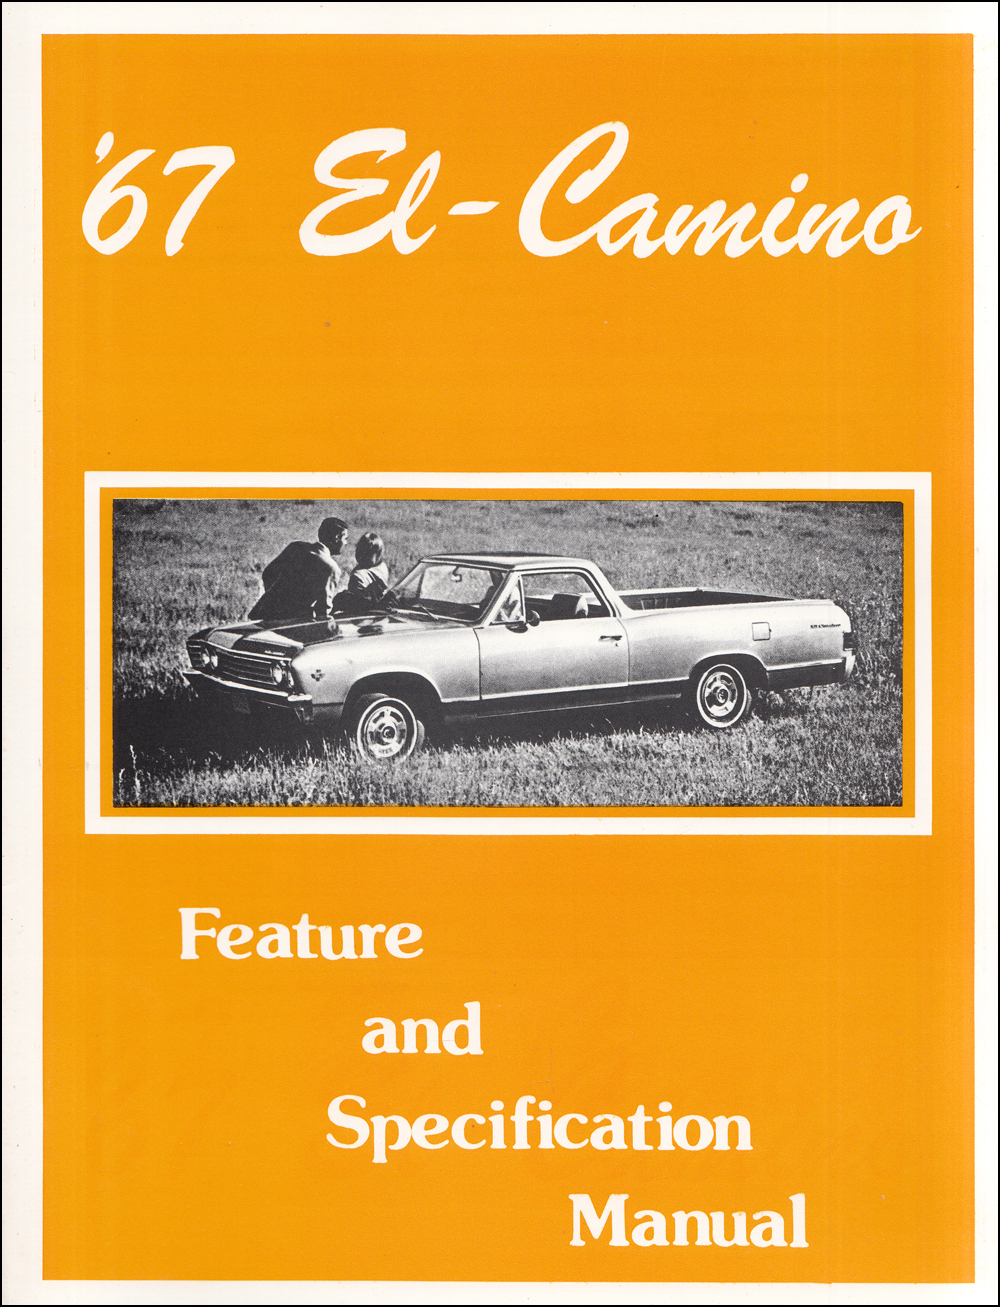 1967 Chevelle Malibu El Camino Wiring Diagram Manual Reprint 1964 Parts Chevrolet Feature And Specification